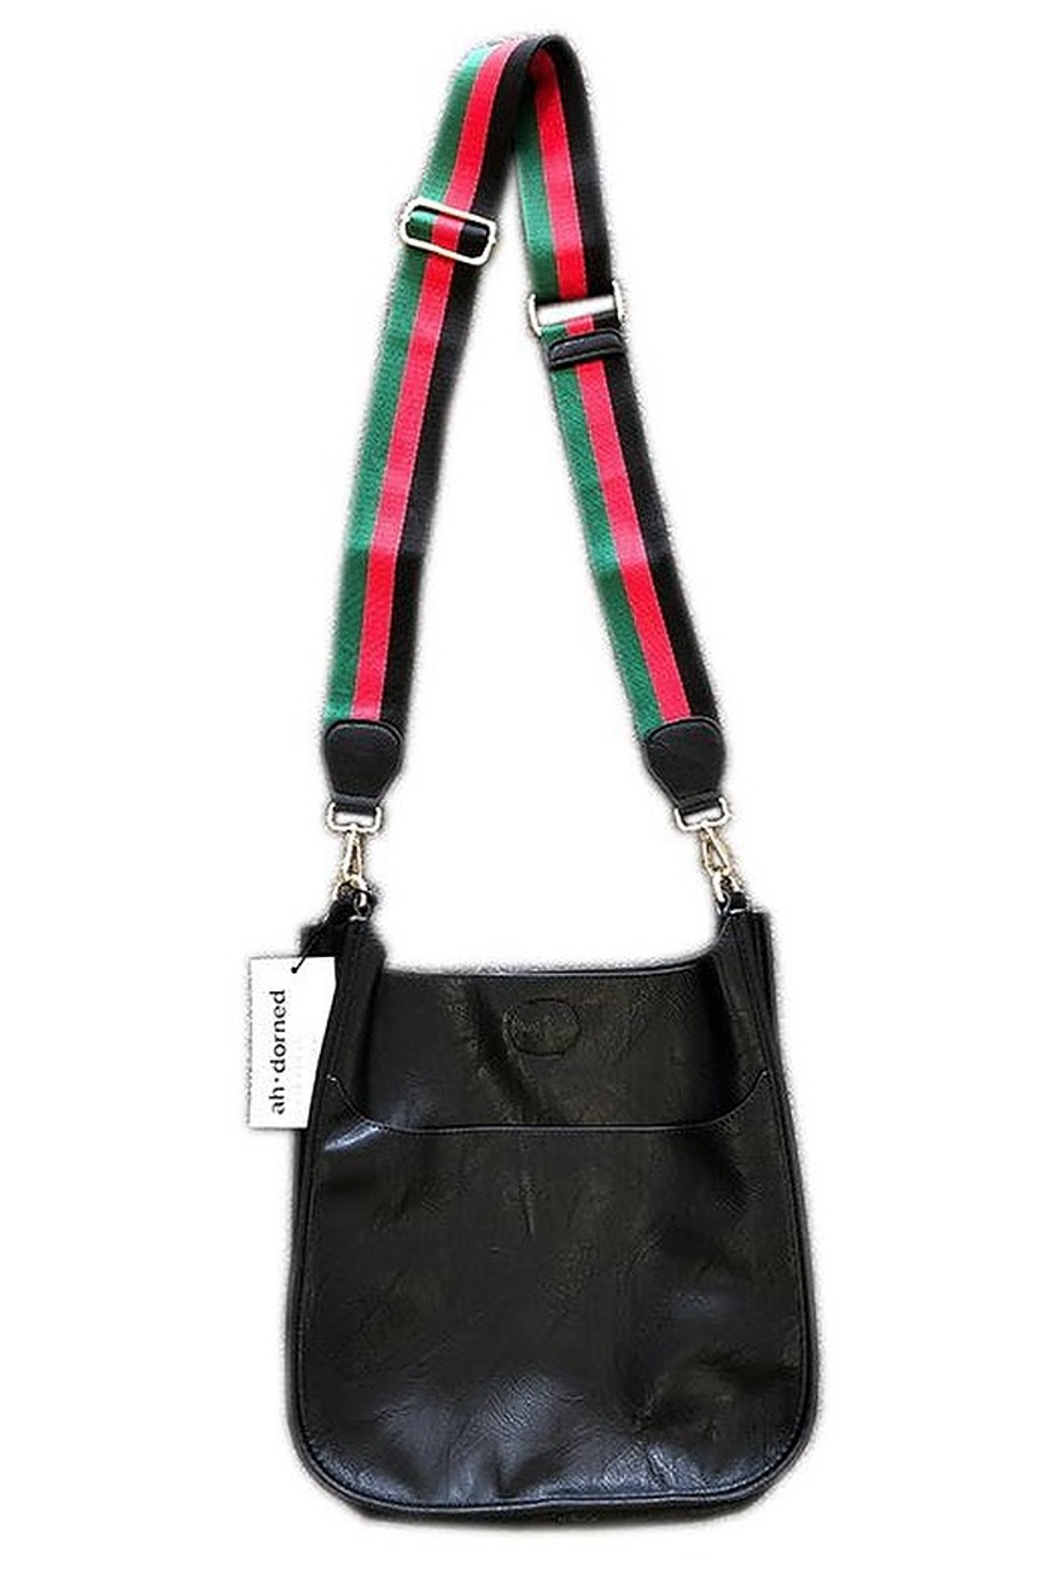 Ahdorned Black Vegan With Black, Red, Green Strap - Main Image